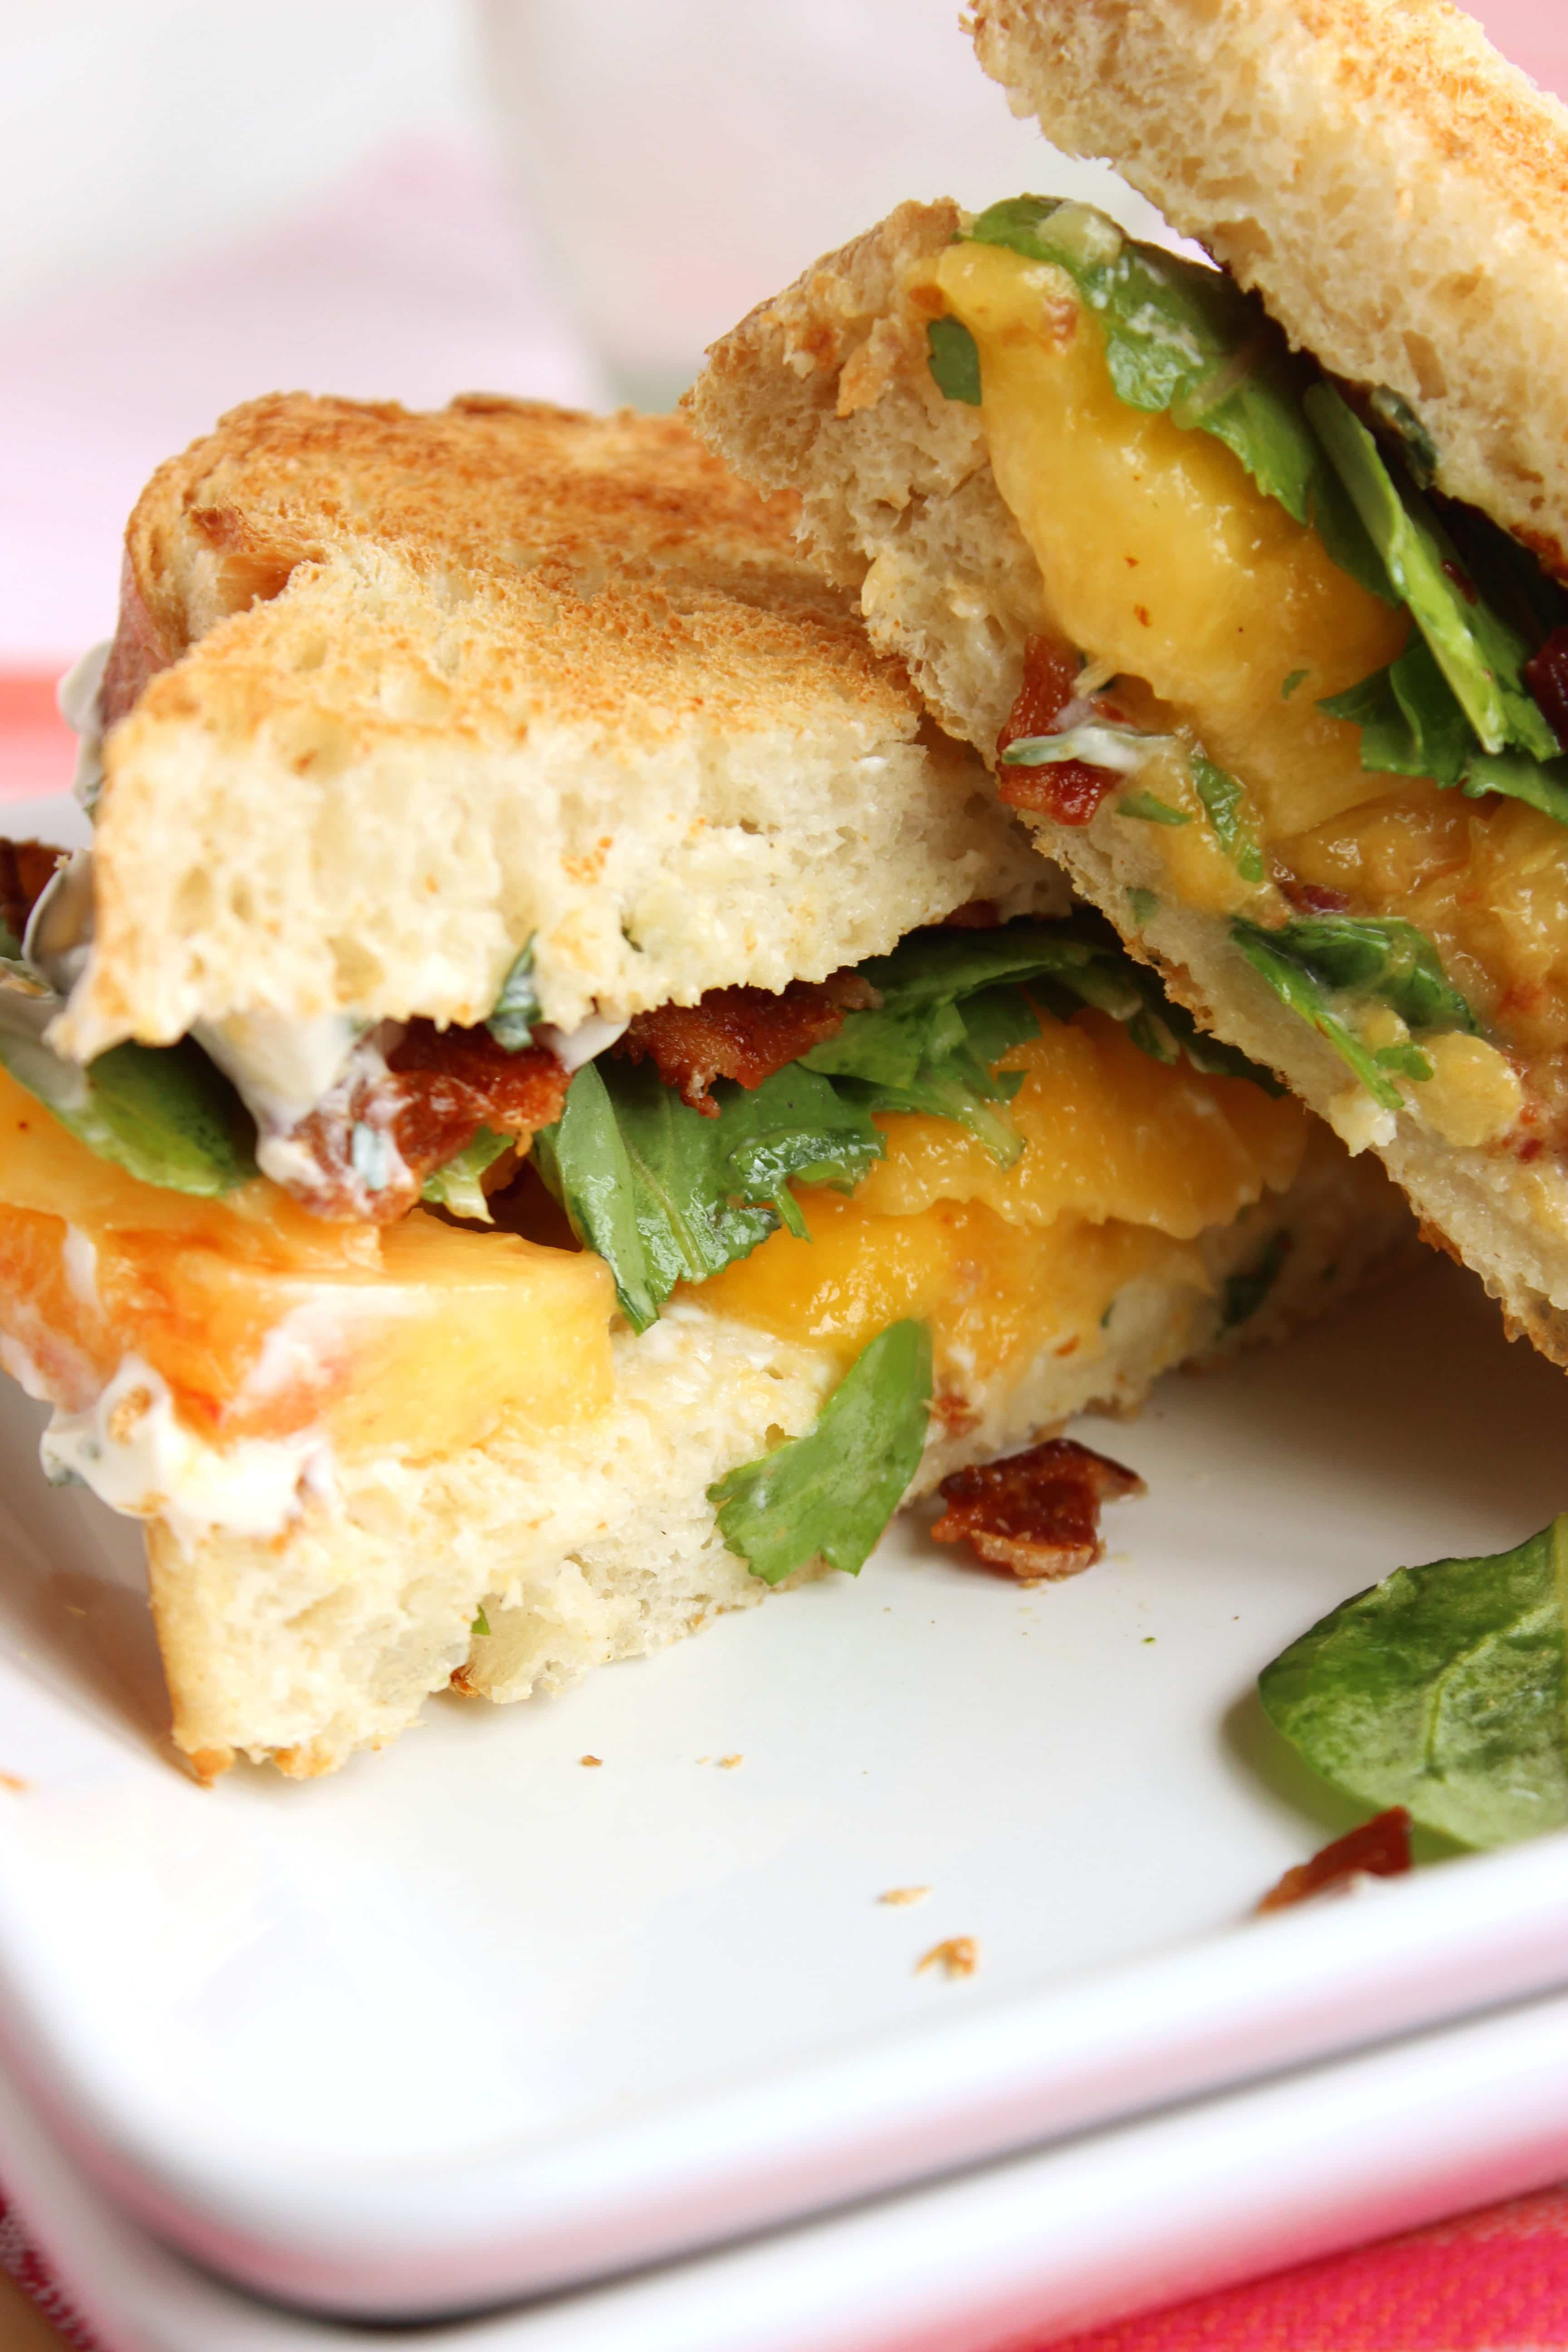 Tomato And Bacon Sandwiches With Bacon Basil Mayo Recipes — Dishmaps